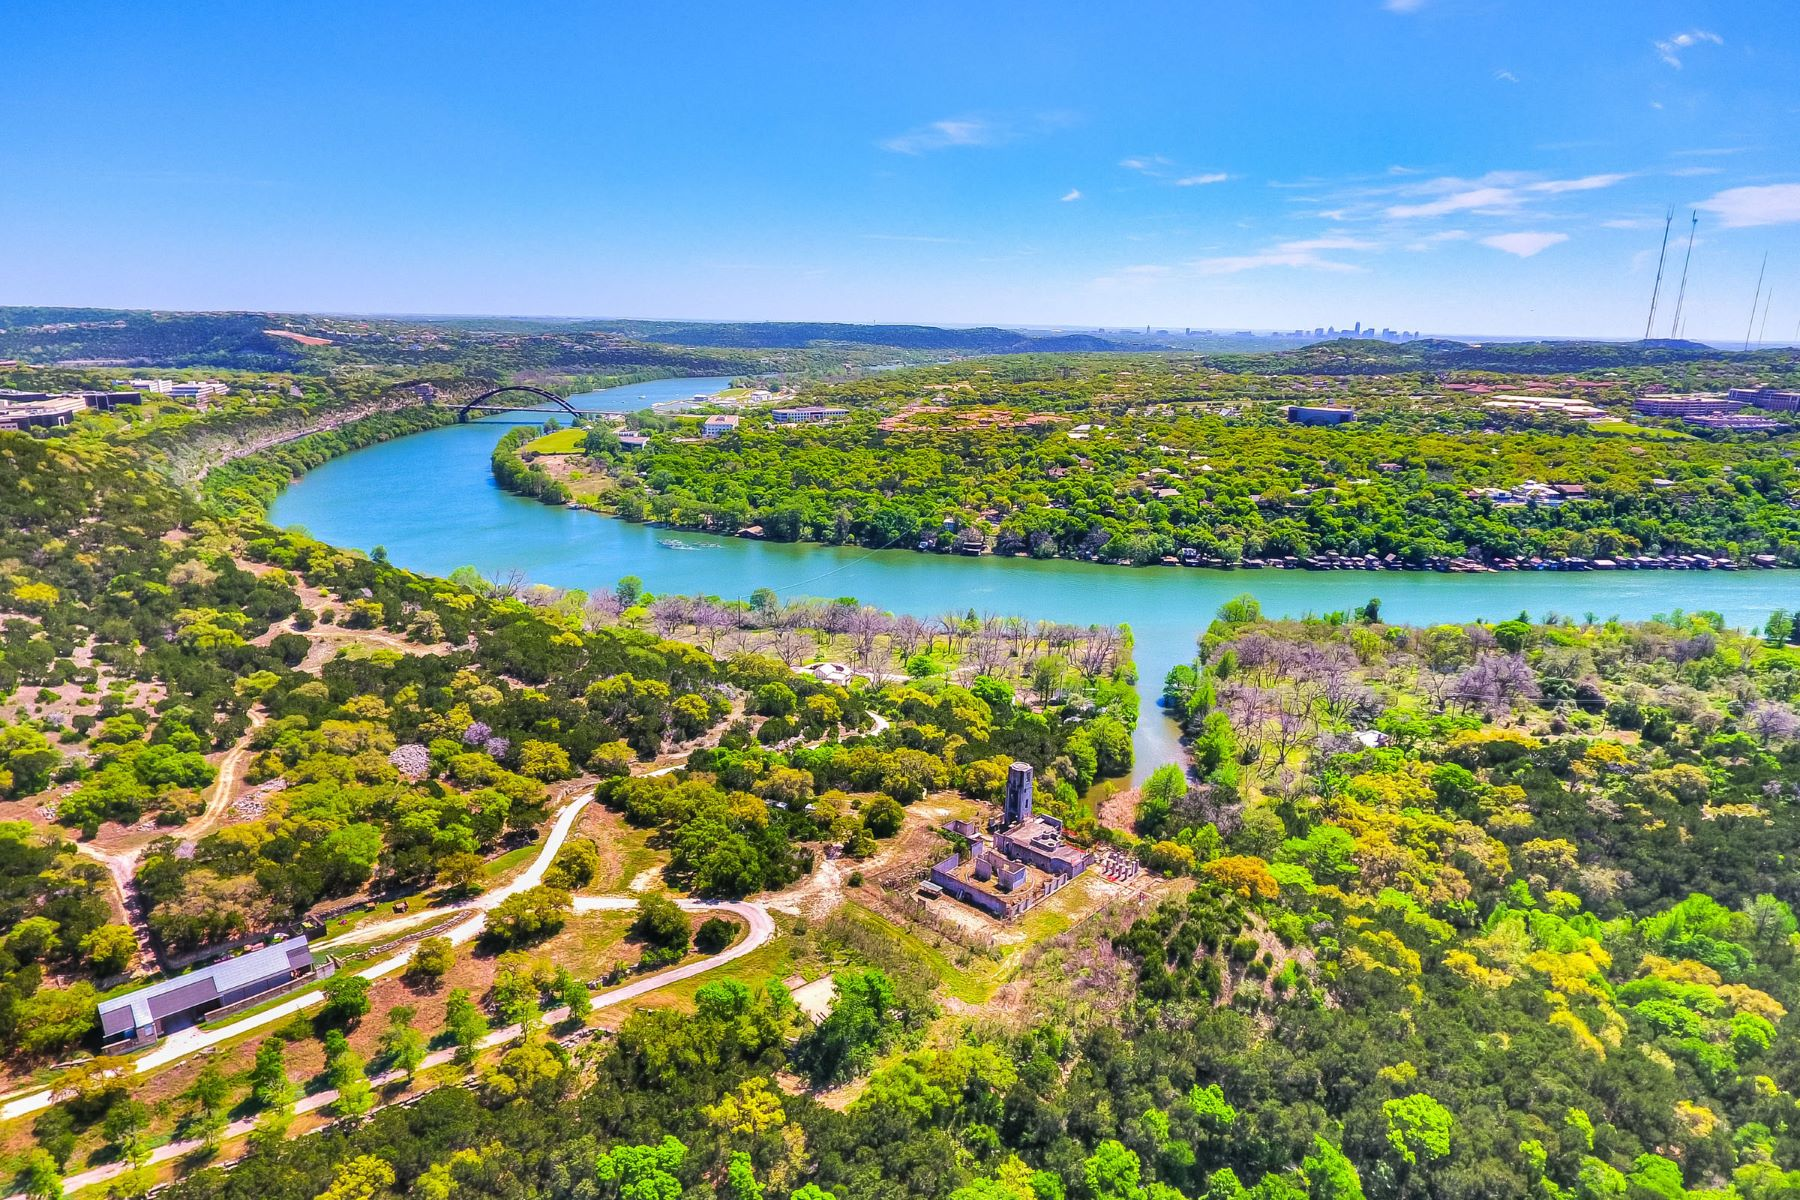 Casa Unifamiliar por un Venta en Lake Austin Ranch 7400 Coldwater Canyon Austin, Texas 78730 Estados Unidos